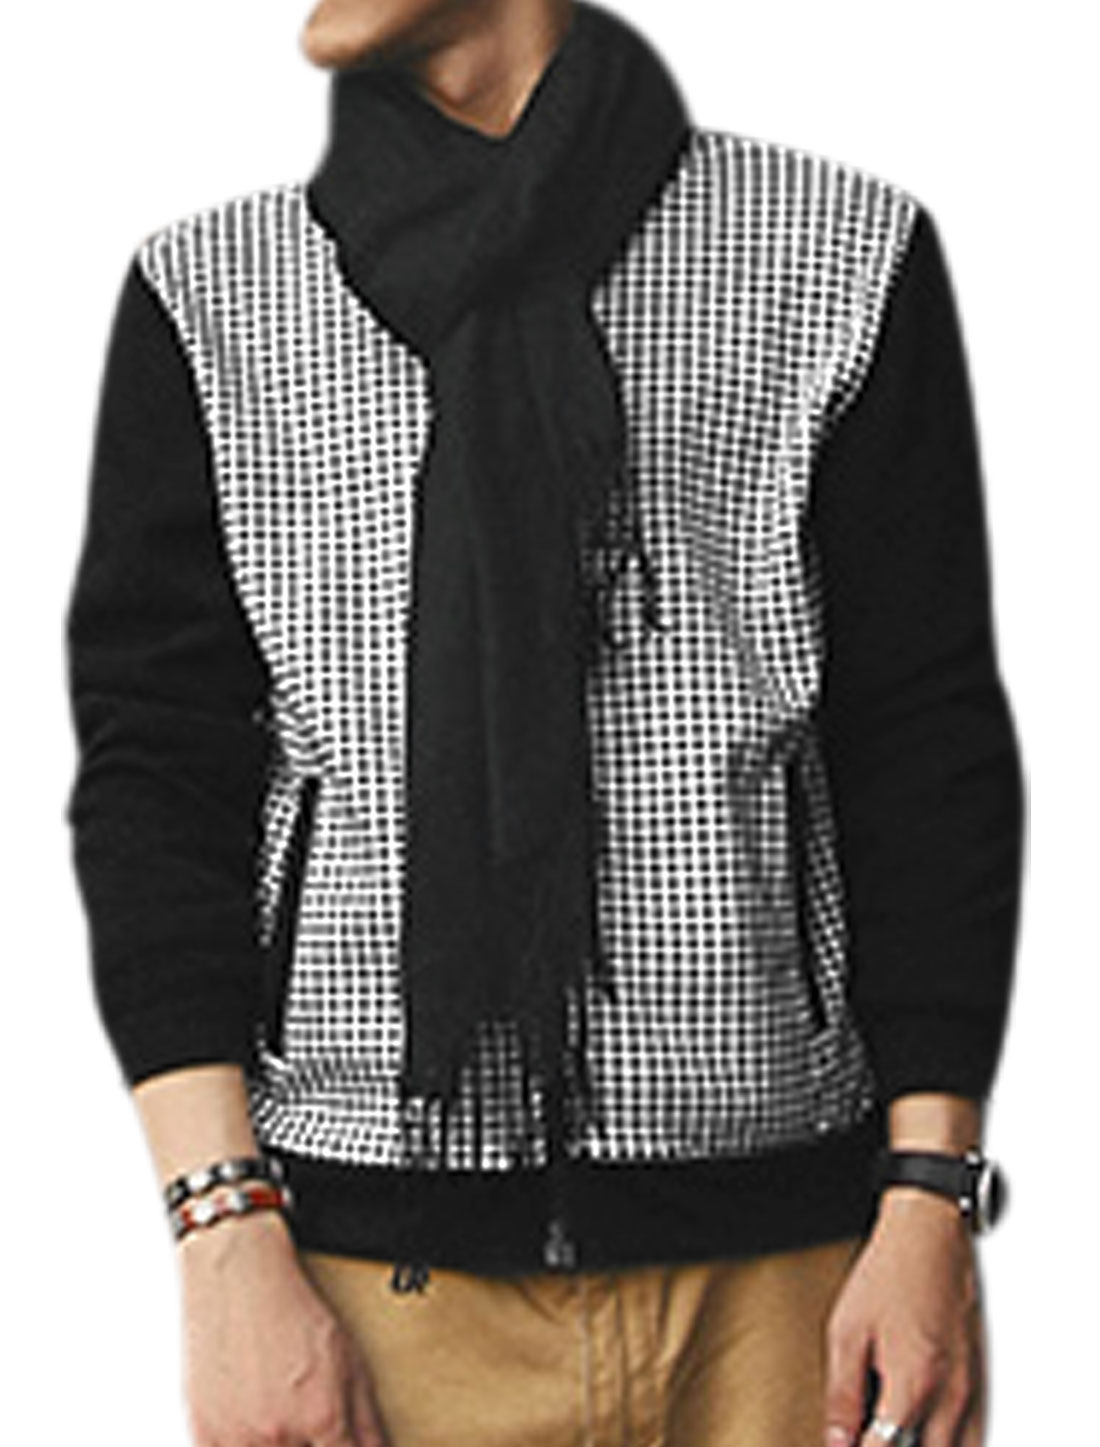 Men Stand Collar Zip Up Houndstooth Pattern Jacket Black White M